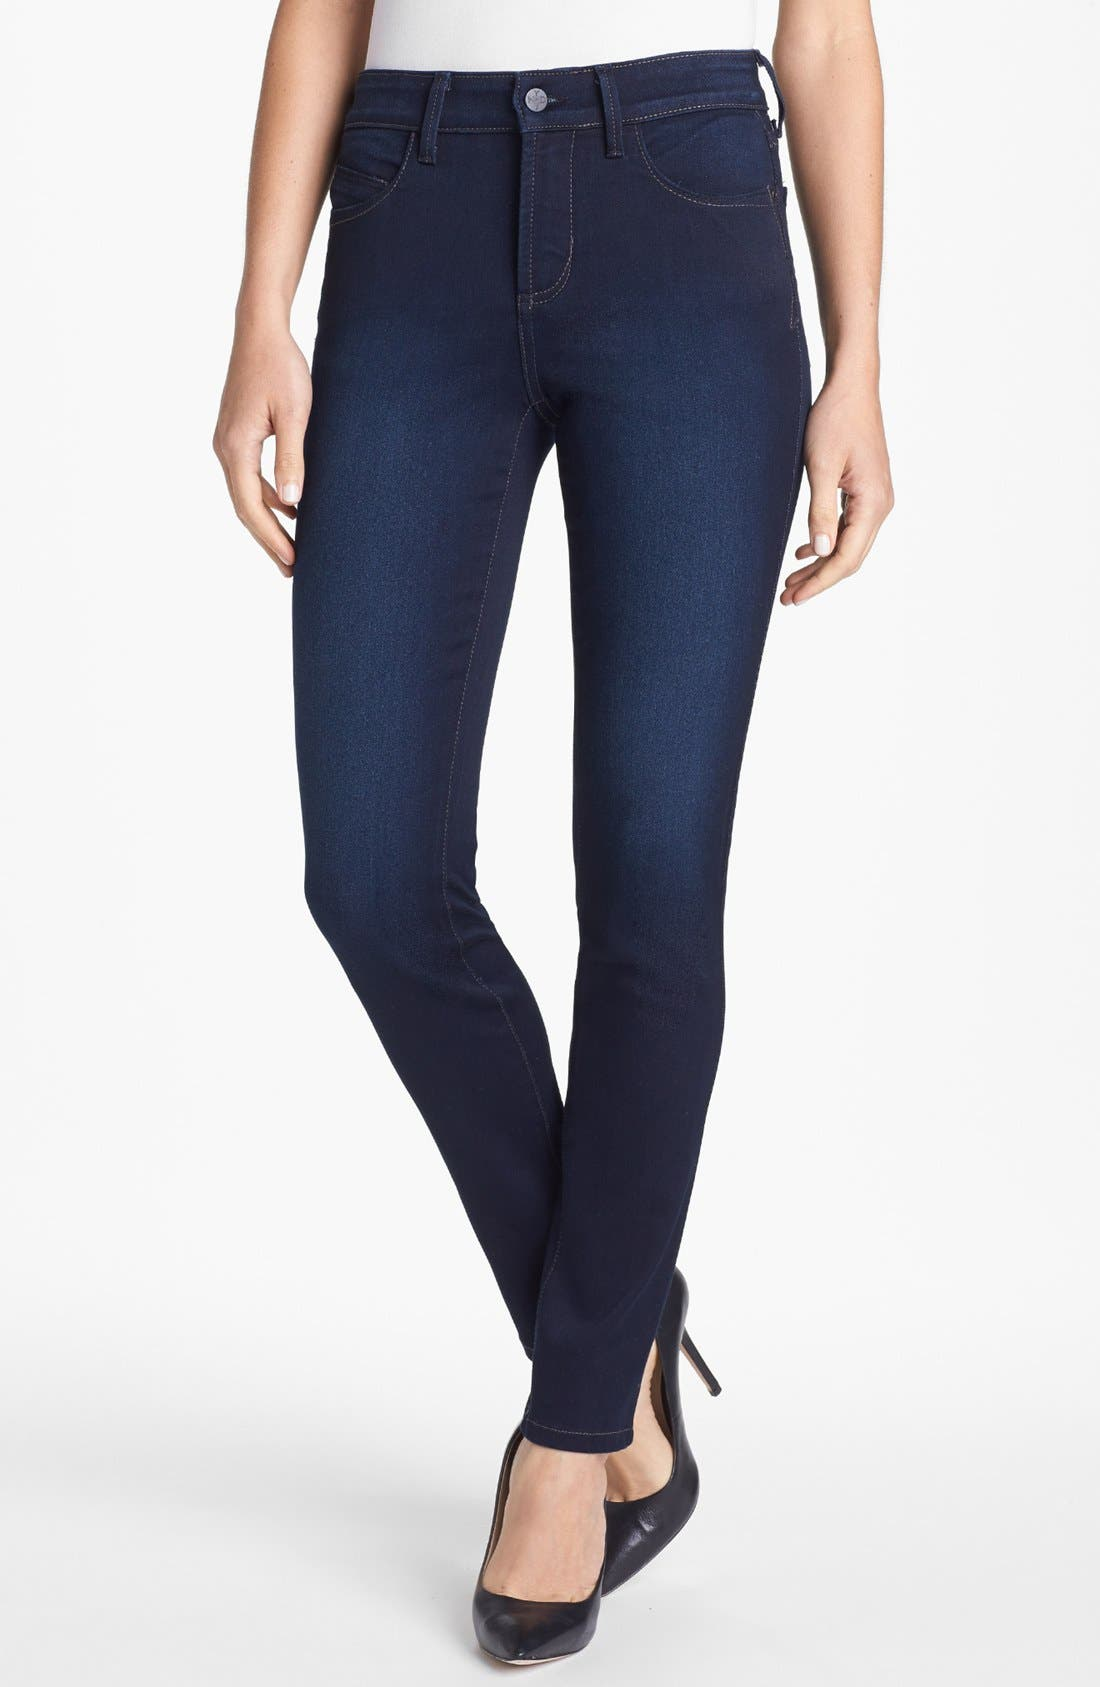 Alternate Image 1 Selected - NYDJ 'Alina' Stretch Skinny Jeans (Pasadena) (Regular & Petite)